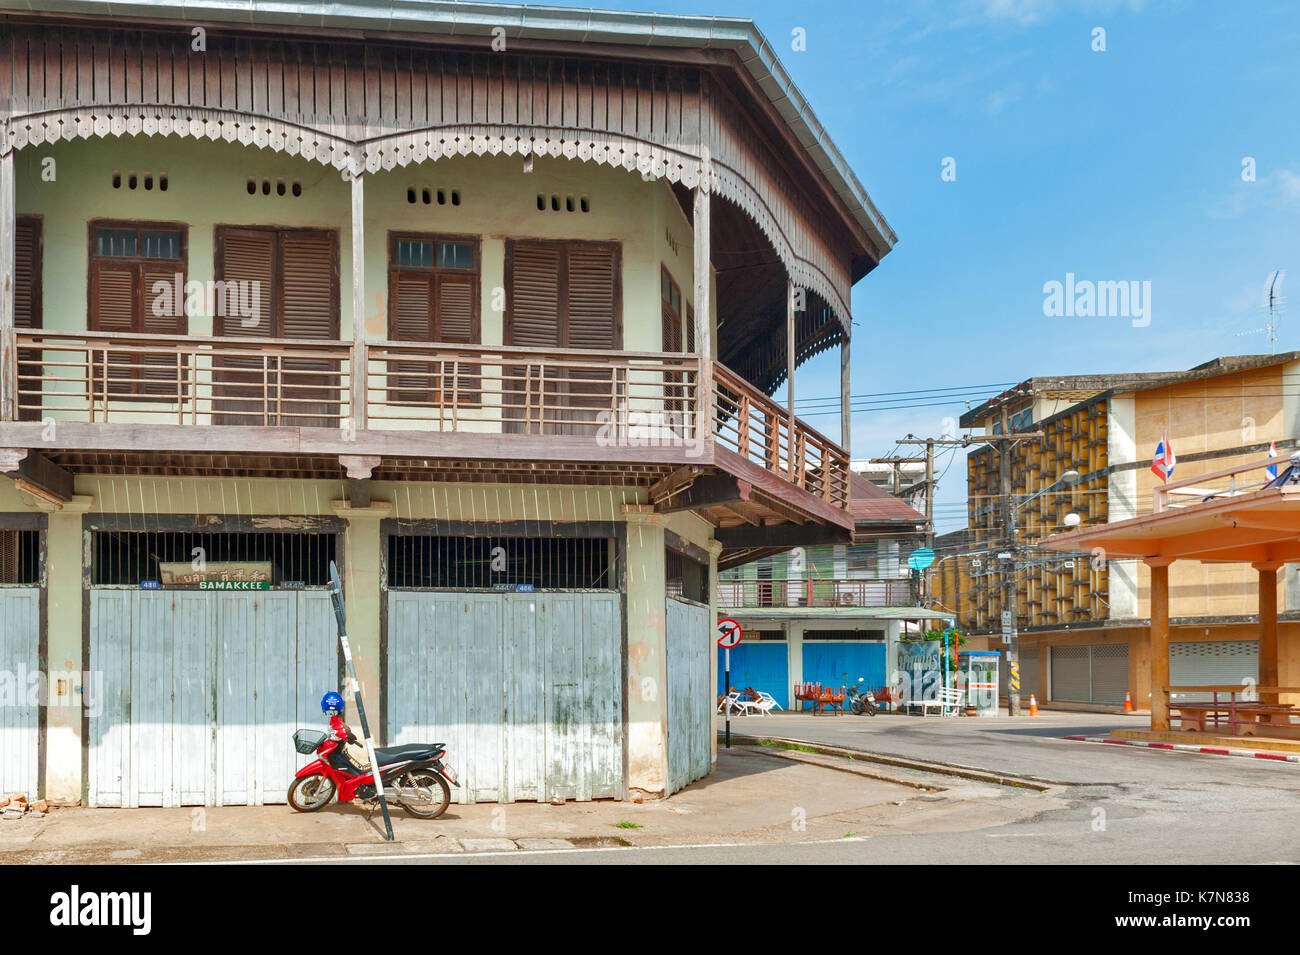 Nakhon Phanom, Thailand - May 2017: Conserved old mixed concrete and wooden shophouse in downtown Nakhon Phanom, Thailand - Stock Image